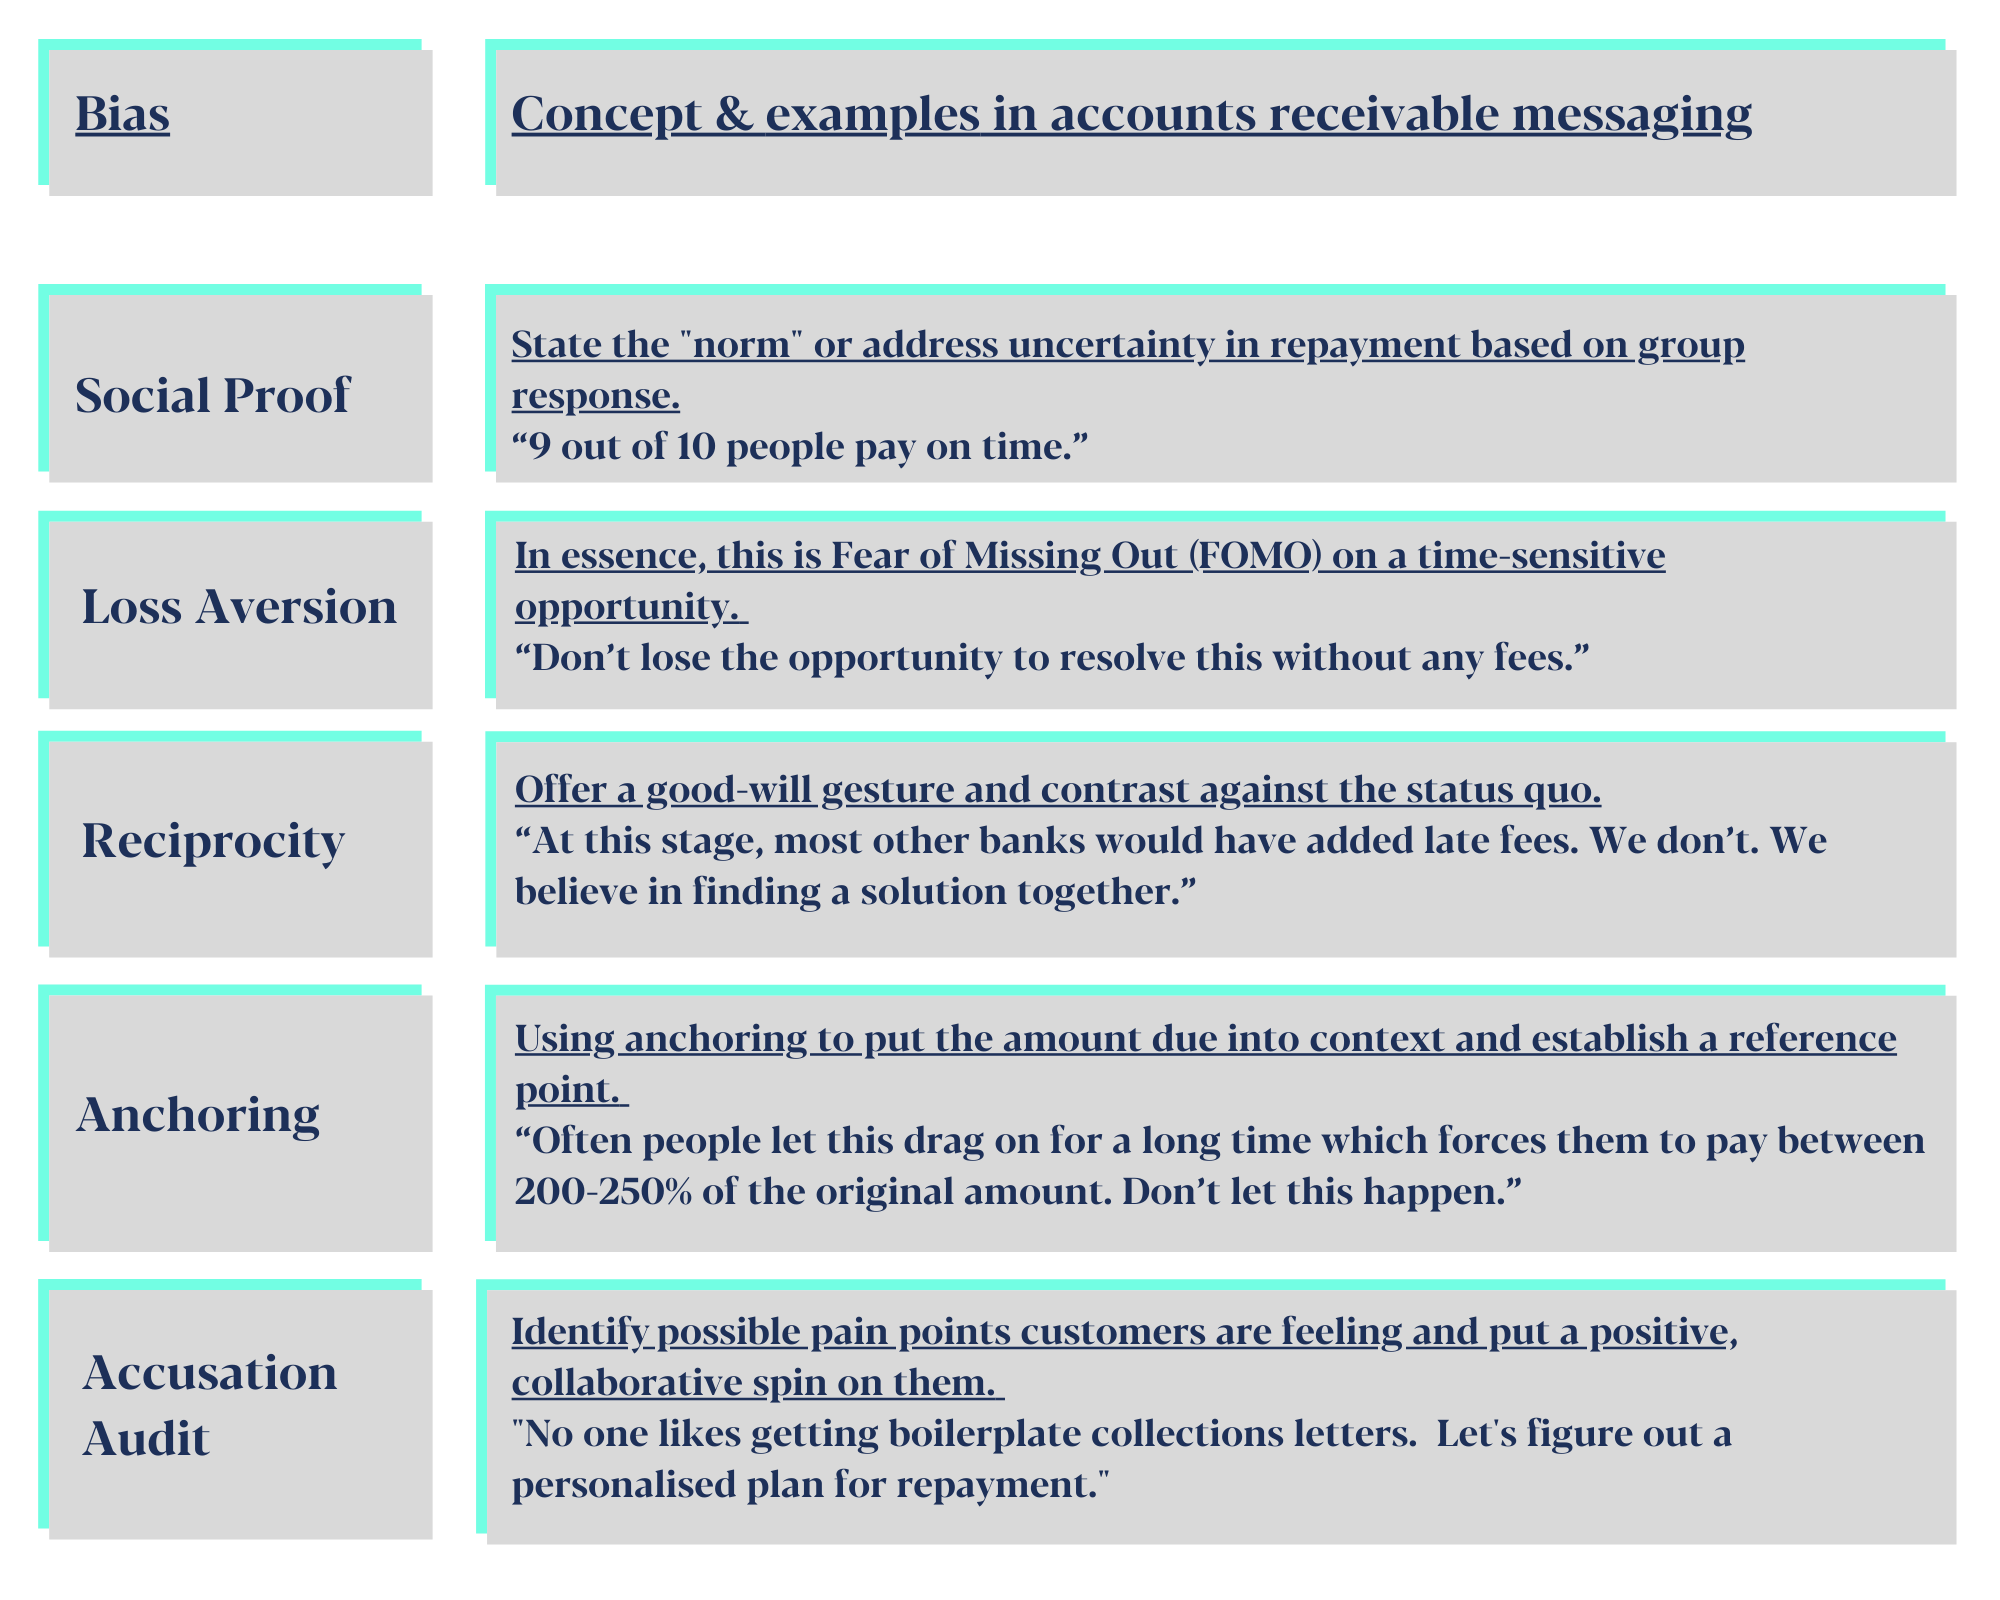 table of behavioural science or behavioural economics biases as they relate toe accounts receivable messaging